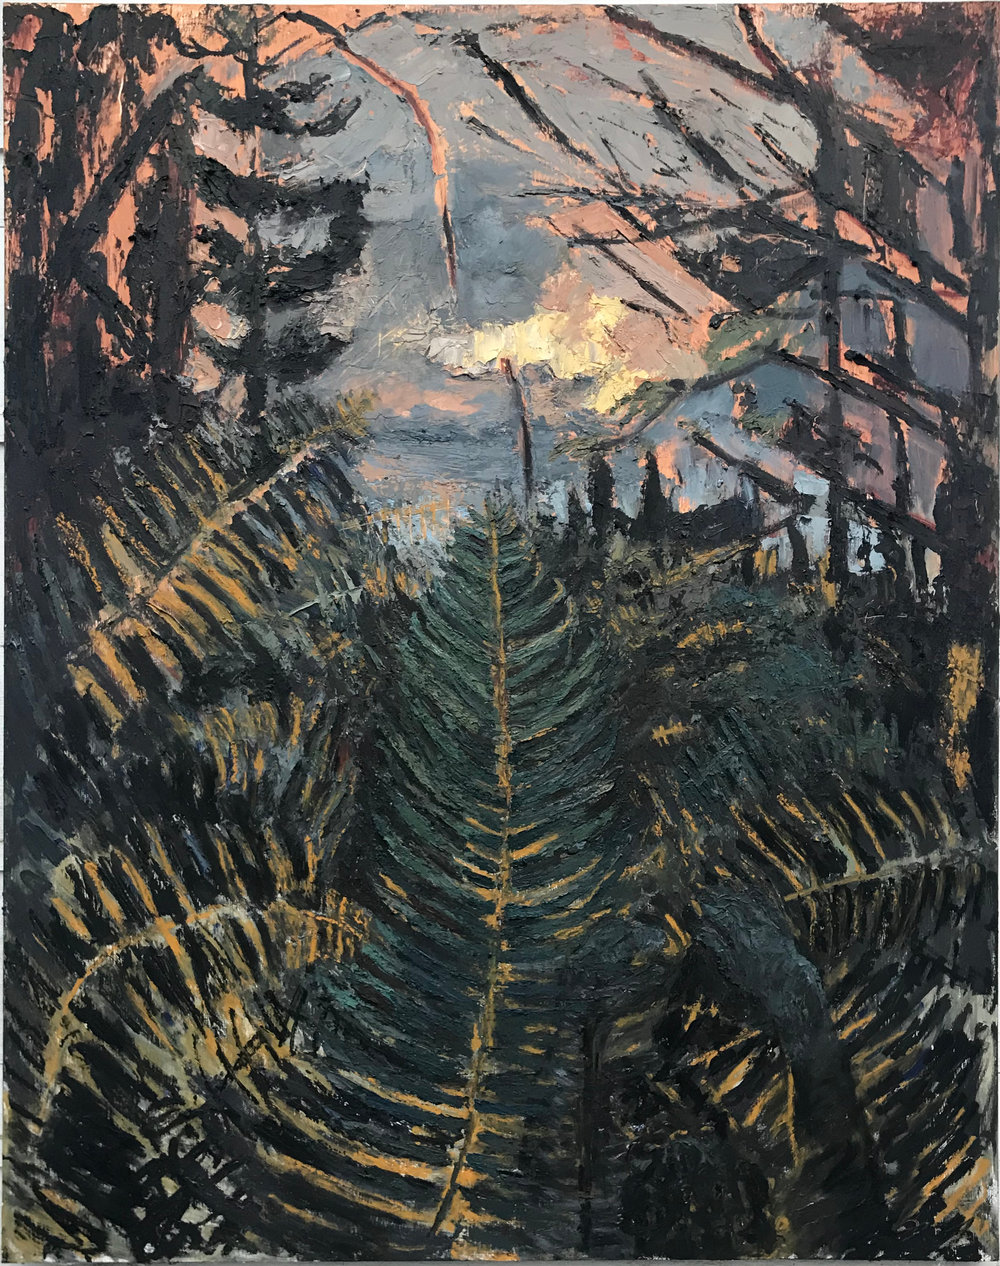 Ferns at Dusk (Winter), oil on panel, 60.75 x 48 in., 2018